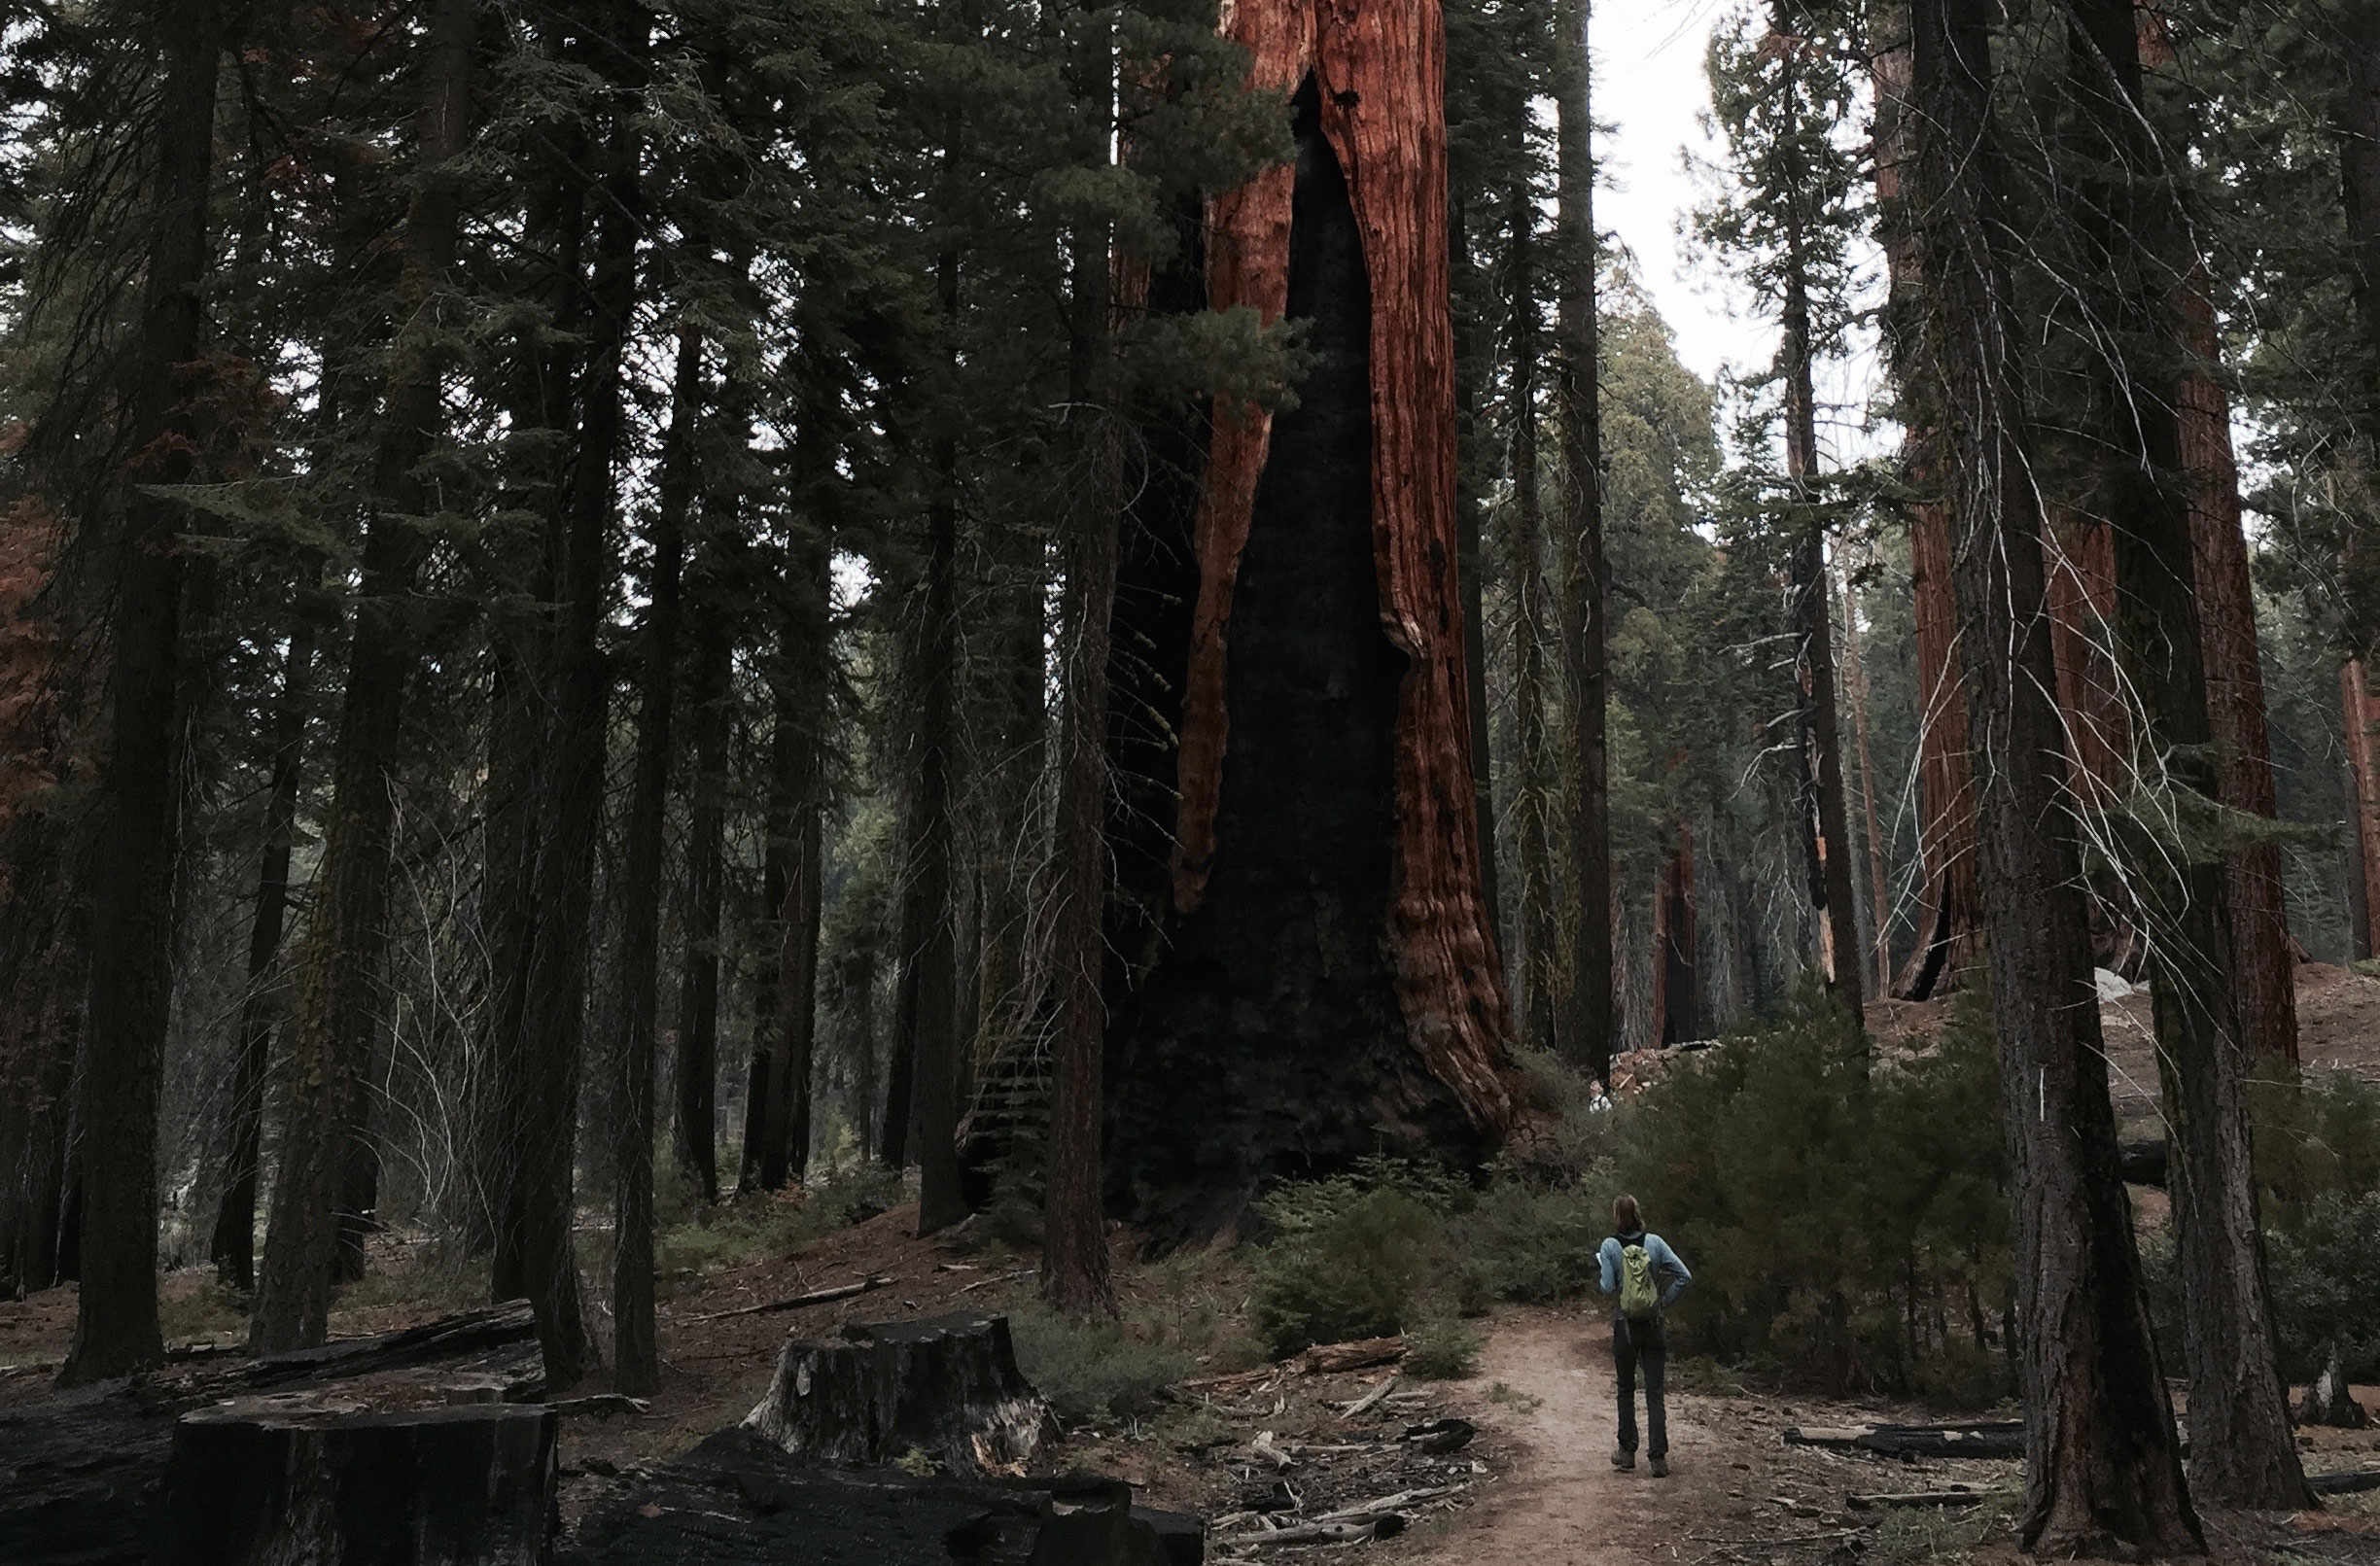 Studying Biodiversity and Carbon Storage in California's Forests